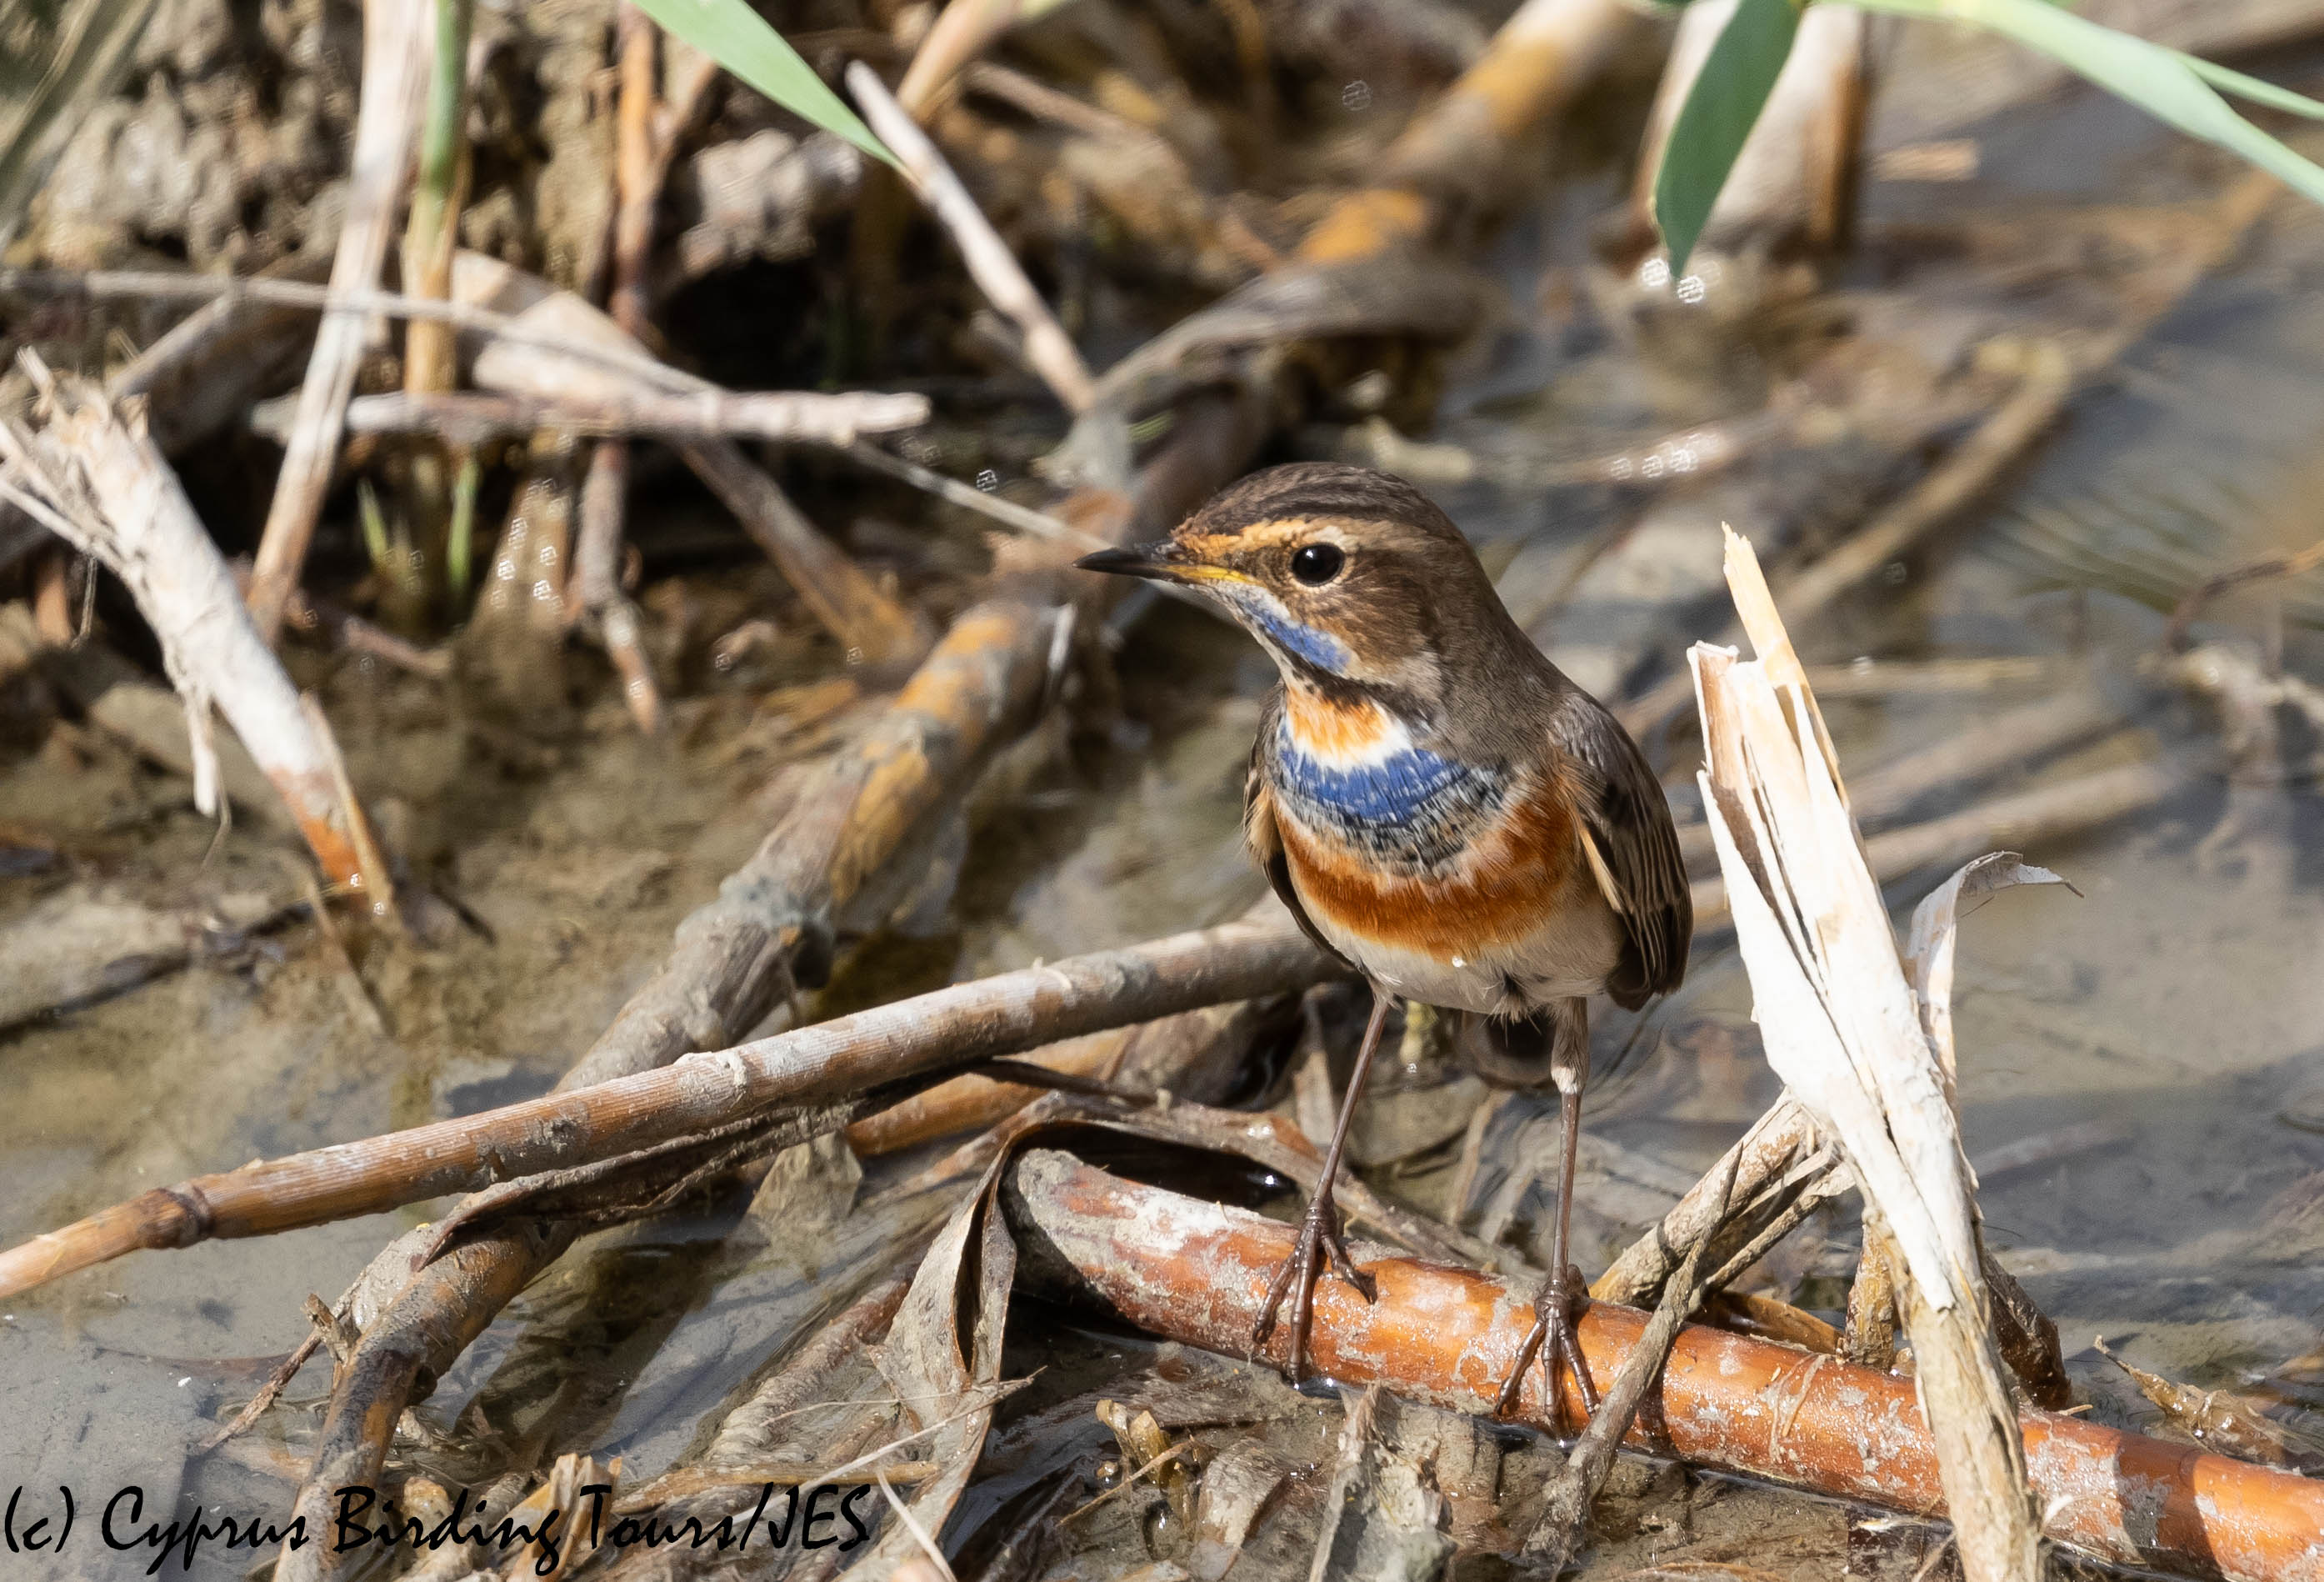 Bluethroat, Zakaki 23rd November 2018 (c) Cyprus Birding Tours